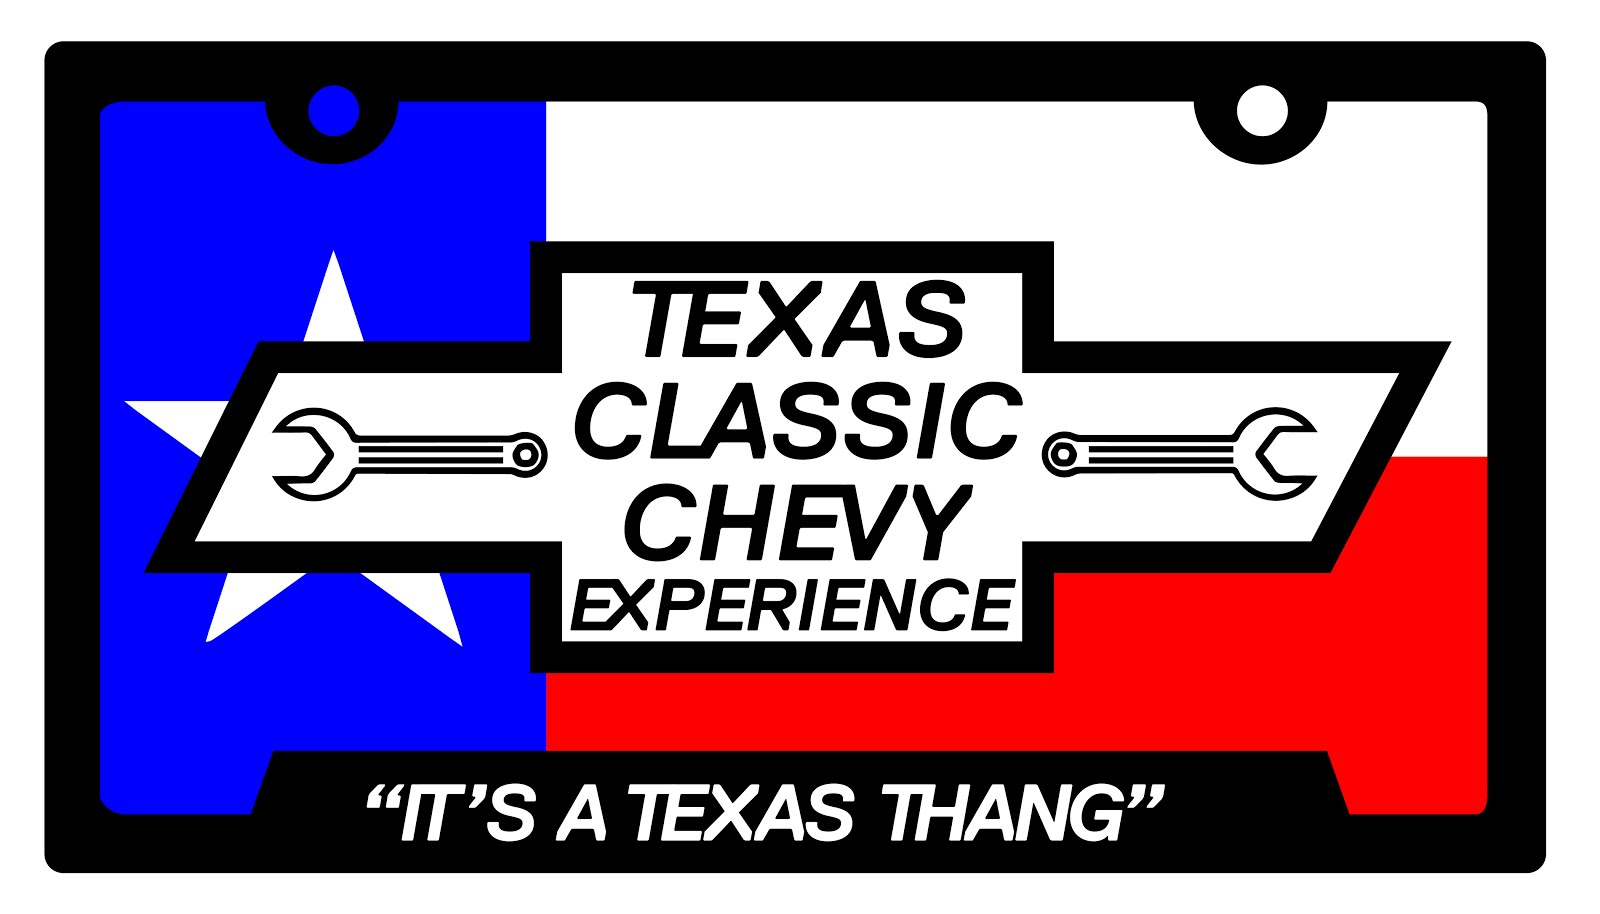 TEXAS CLASSIC CHEVY EXPERIENCE